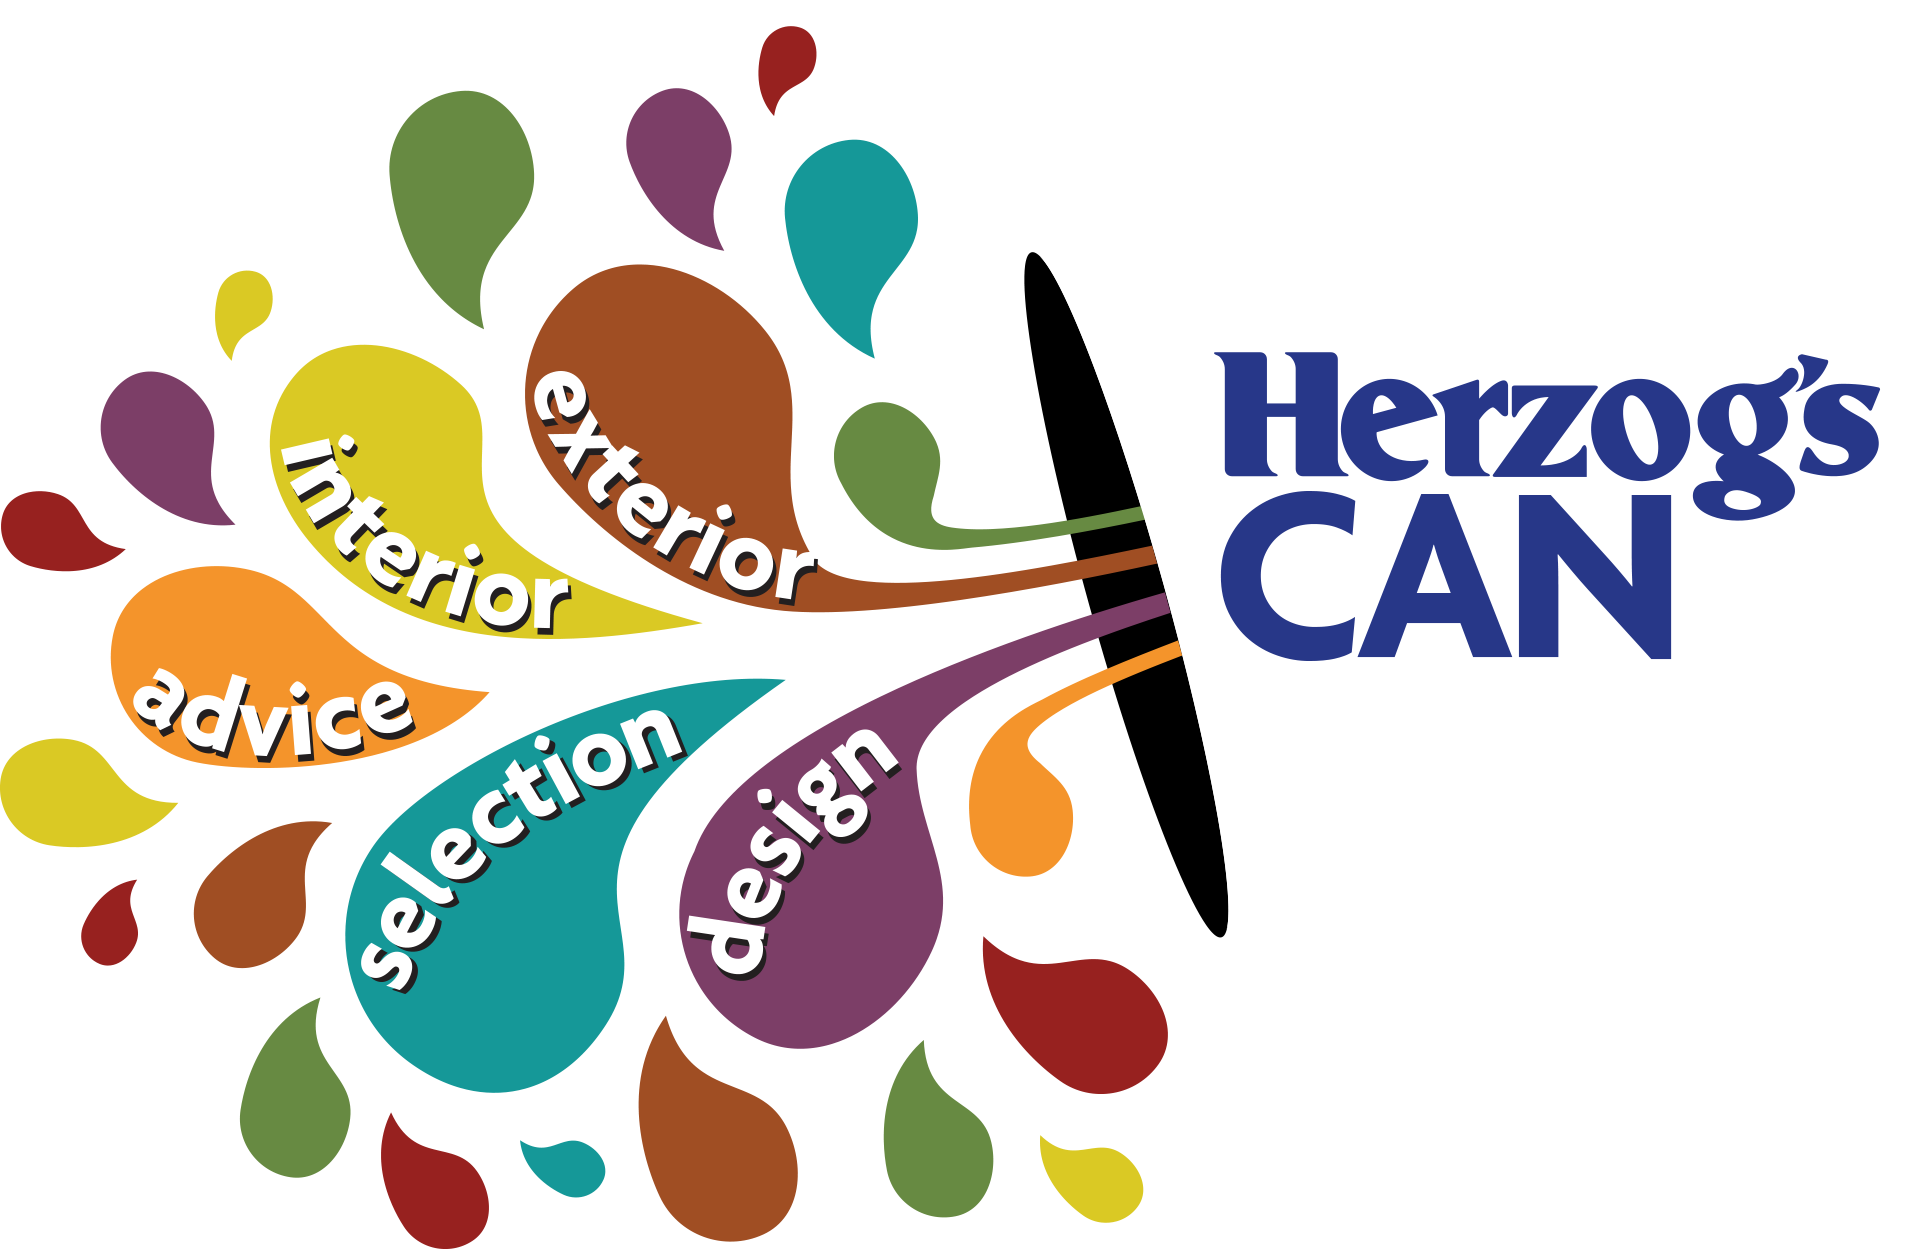 Herzog's CAN - Advice, Selection, Design, Interior, Exterior